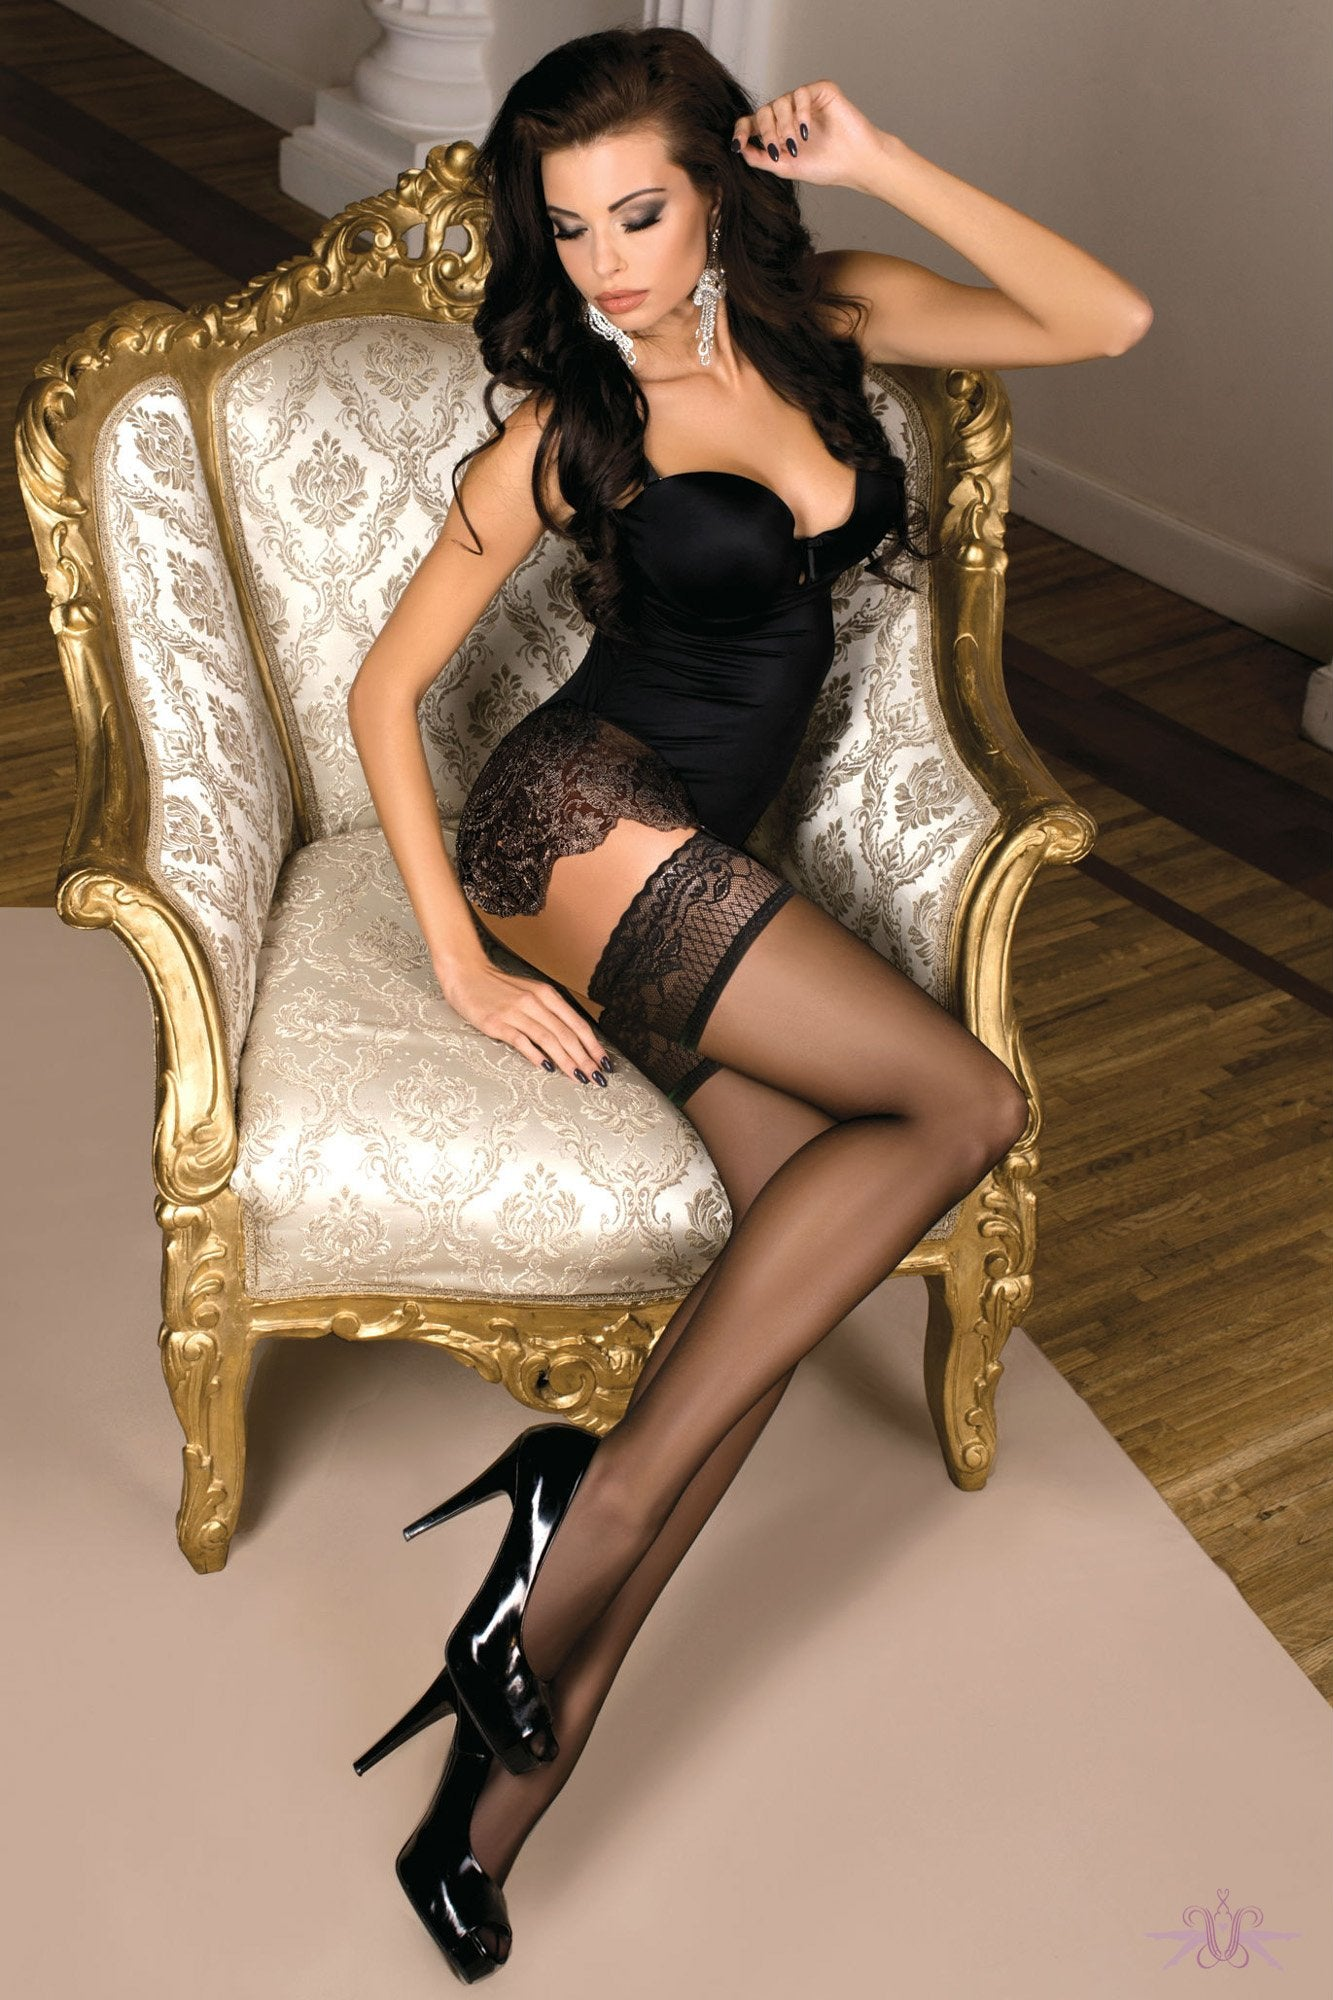 Ballerina Sheer Black Hold Ups - The Hosiery Box